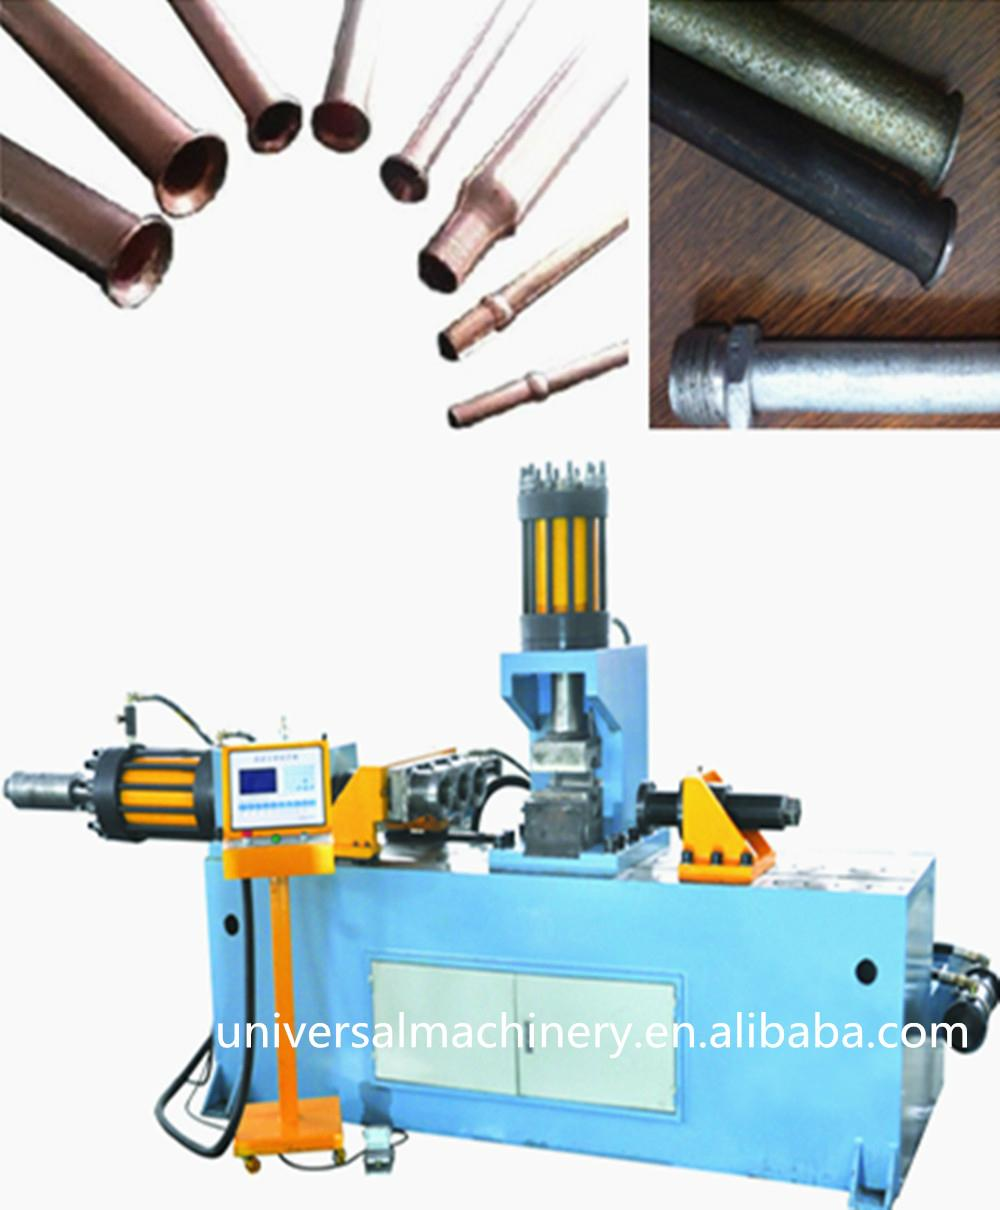 China Factory price Pipe End Forming Machine for Reducing Expanding Flanging 1